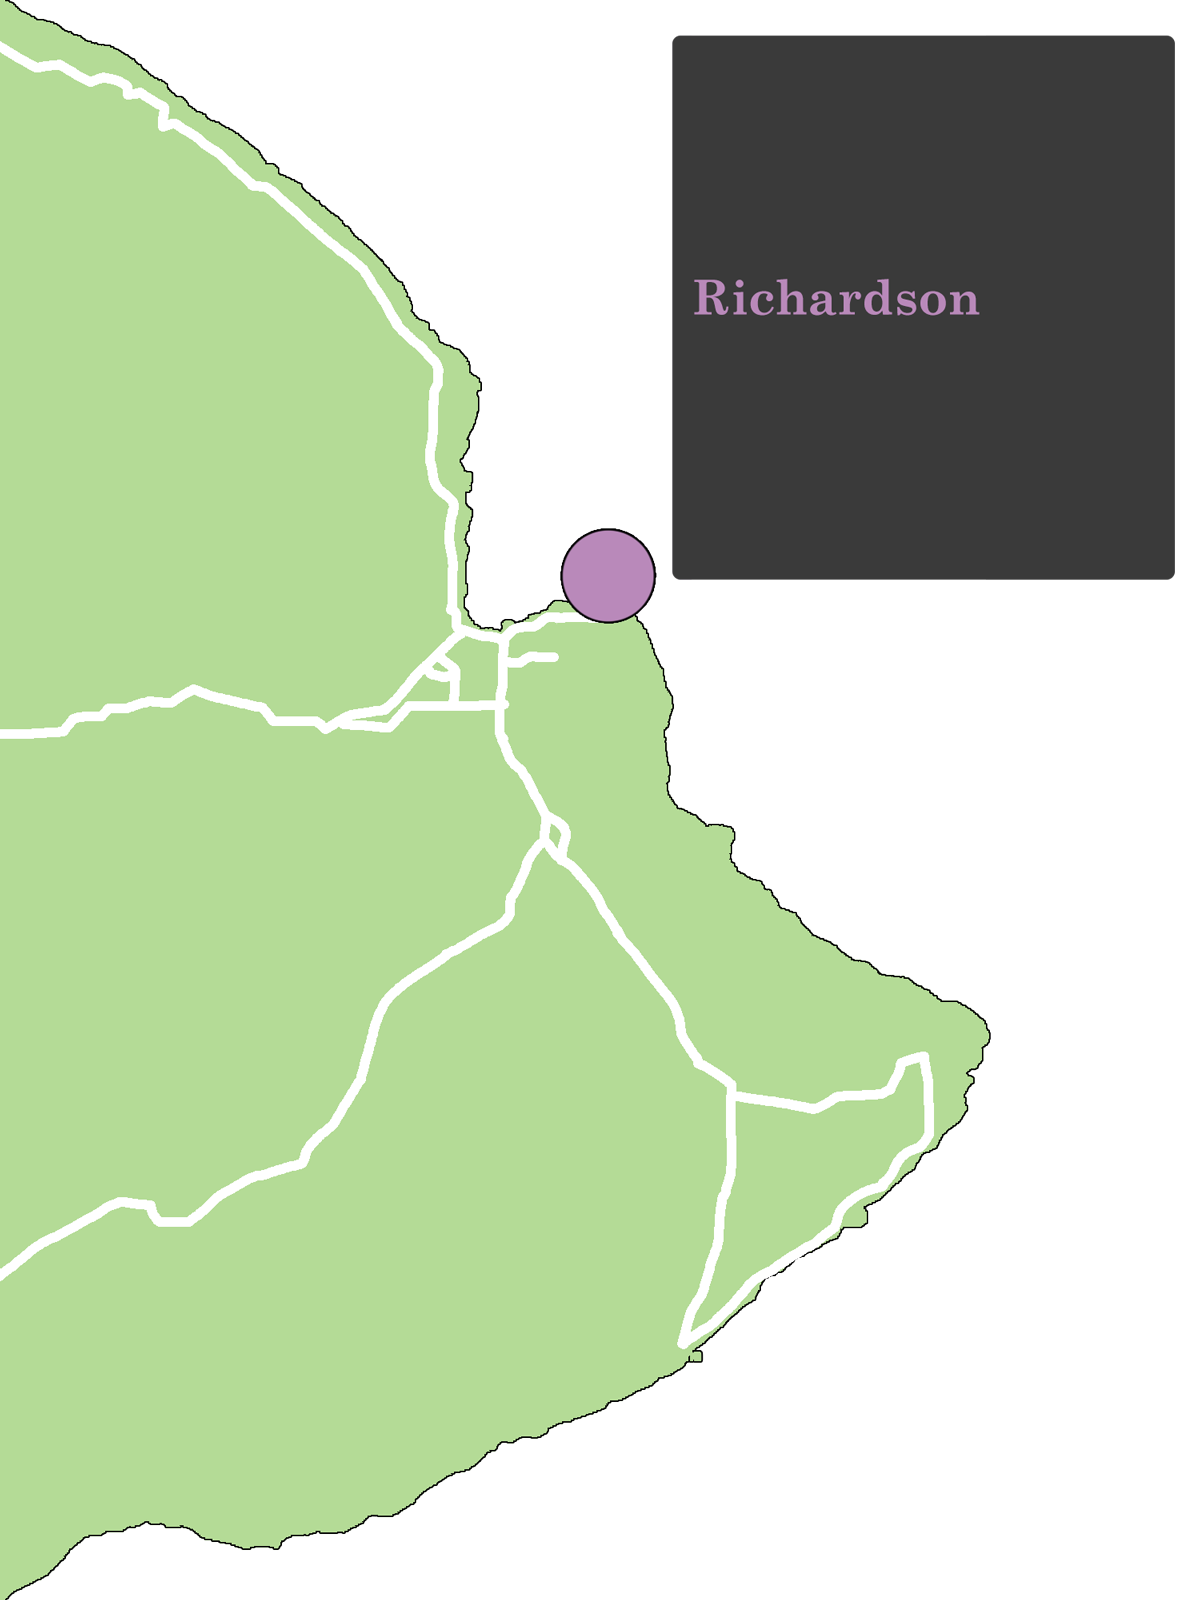 RichardsonHiloMap.png